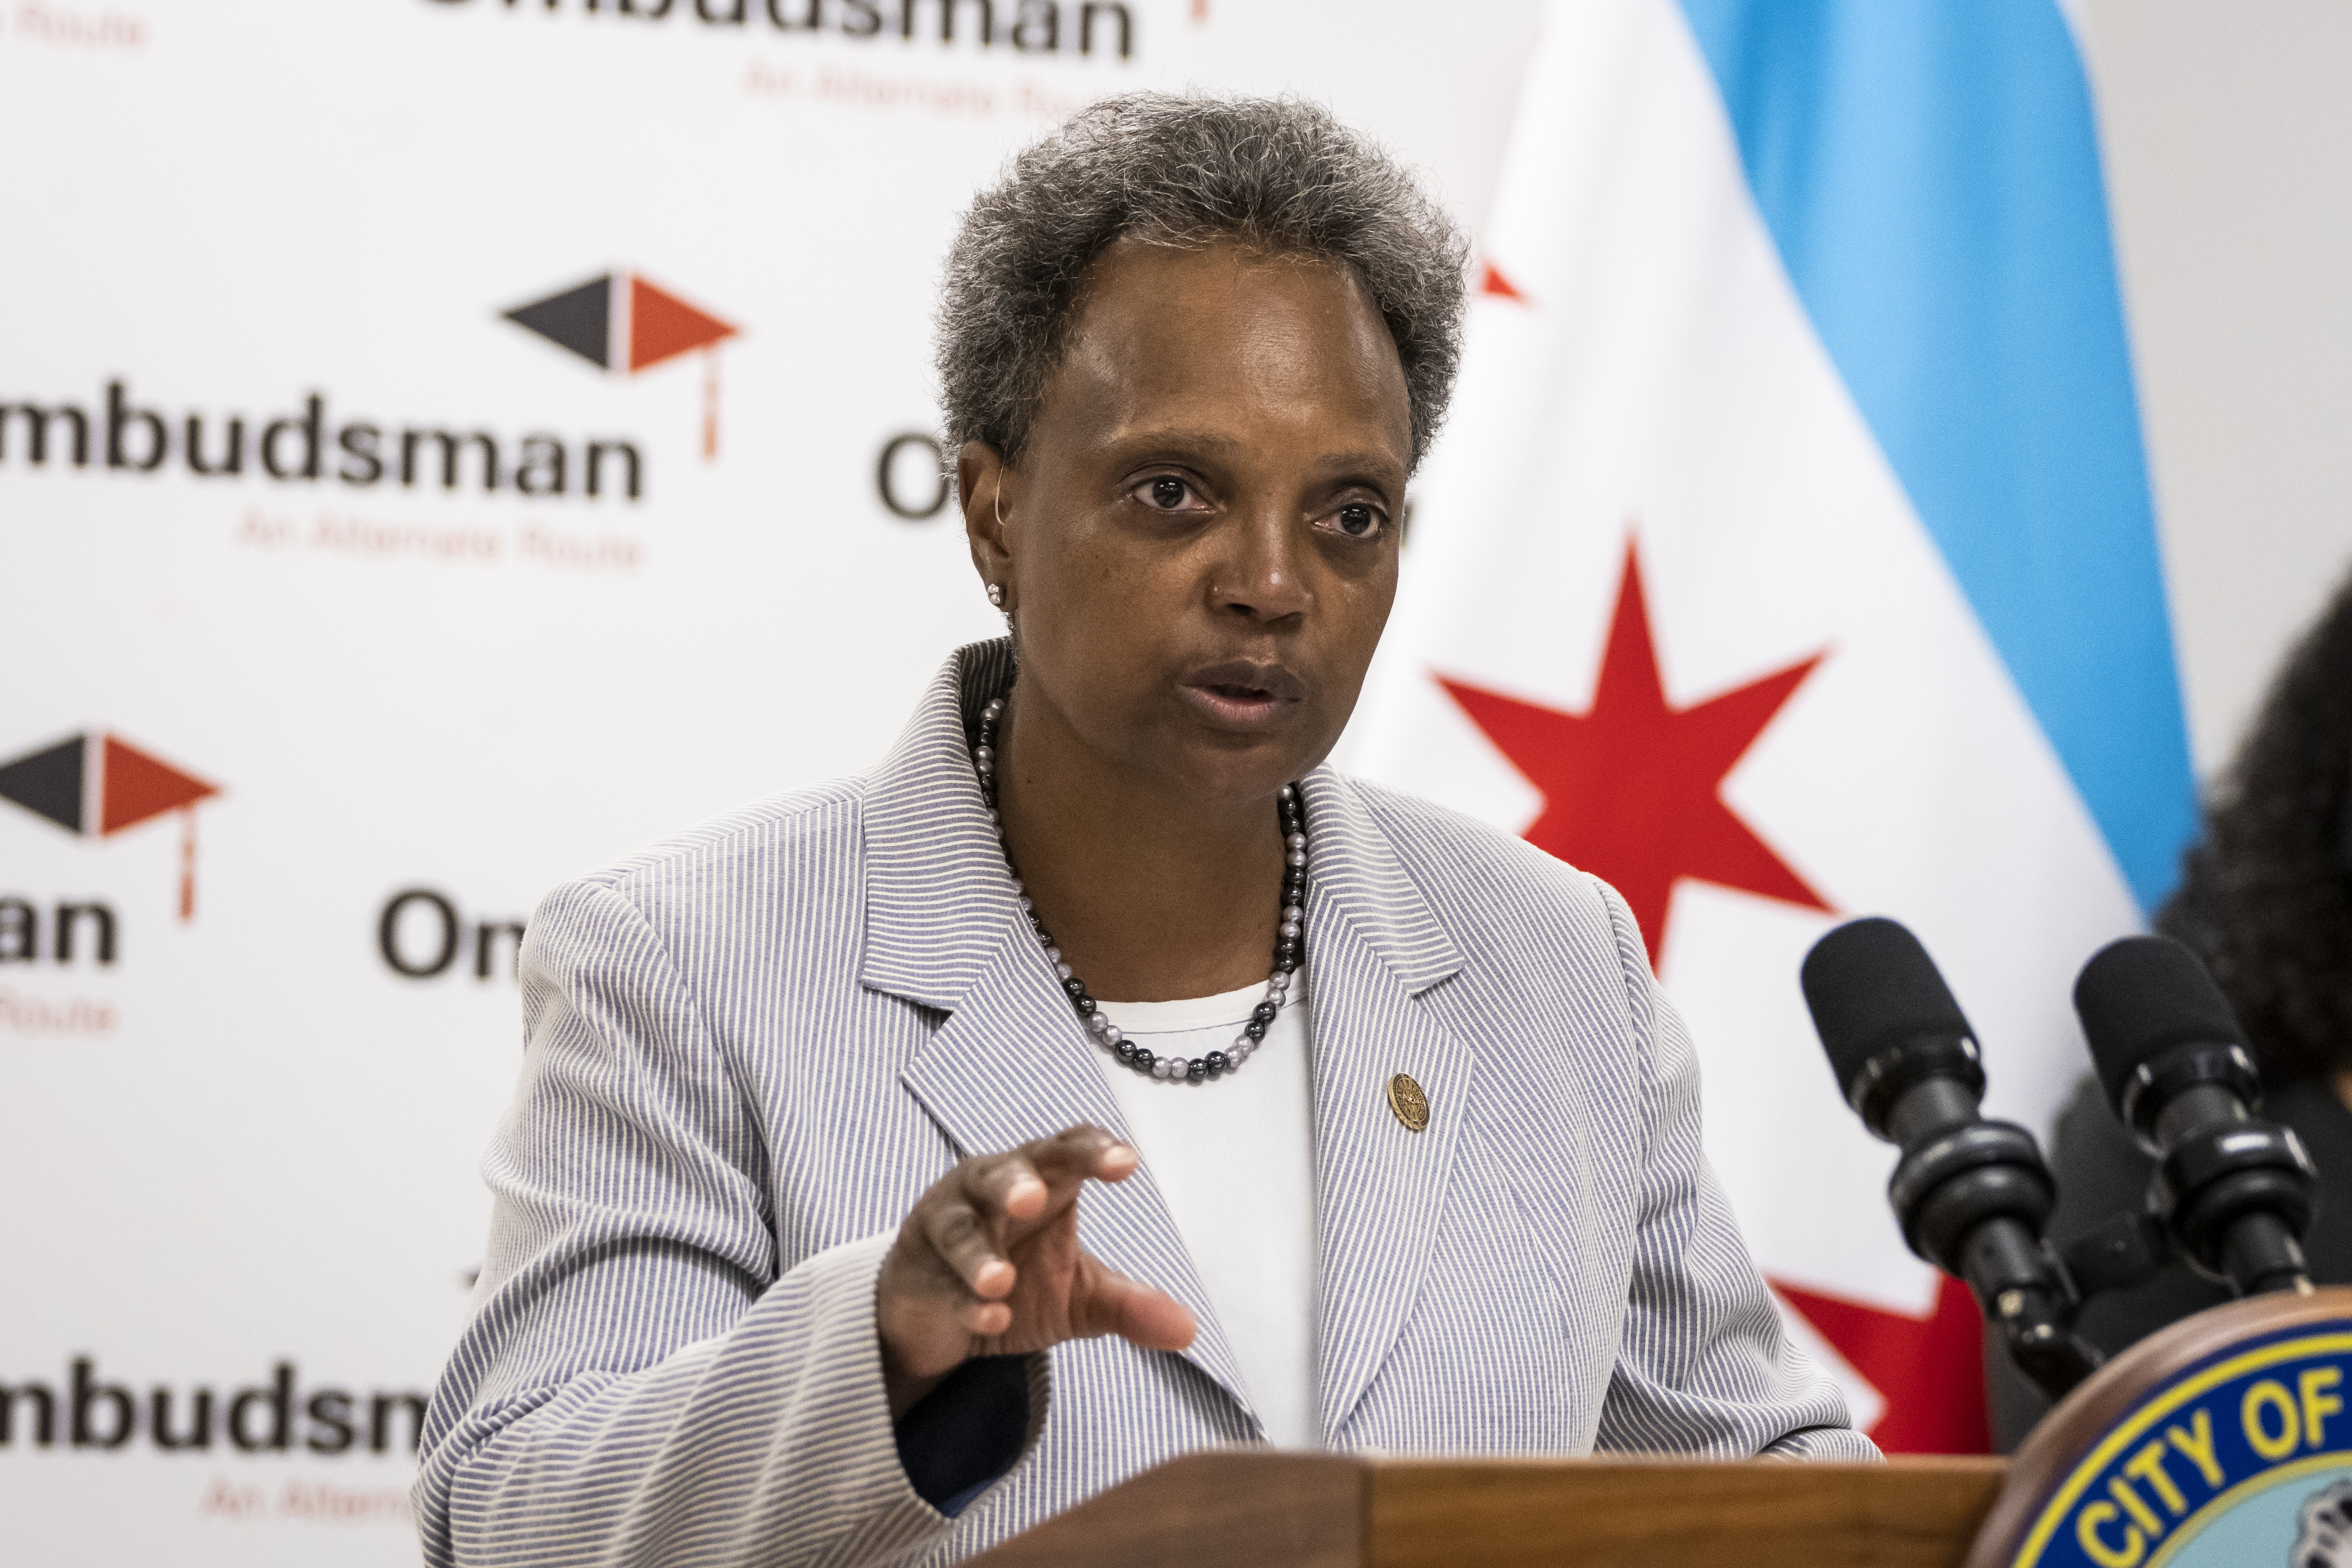 Mayor Lori Lightfoot speaks during a news conference at Ombudsman Chicago South Alternative School, 6057 S. Western Ave. in West Englewood, on the first day of school for the Chicago Public Schools 2021 - 2022 school year, Monday morning, Aug. 30, 2021.